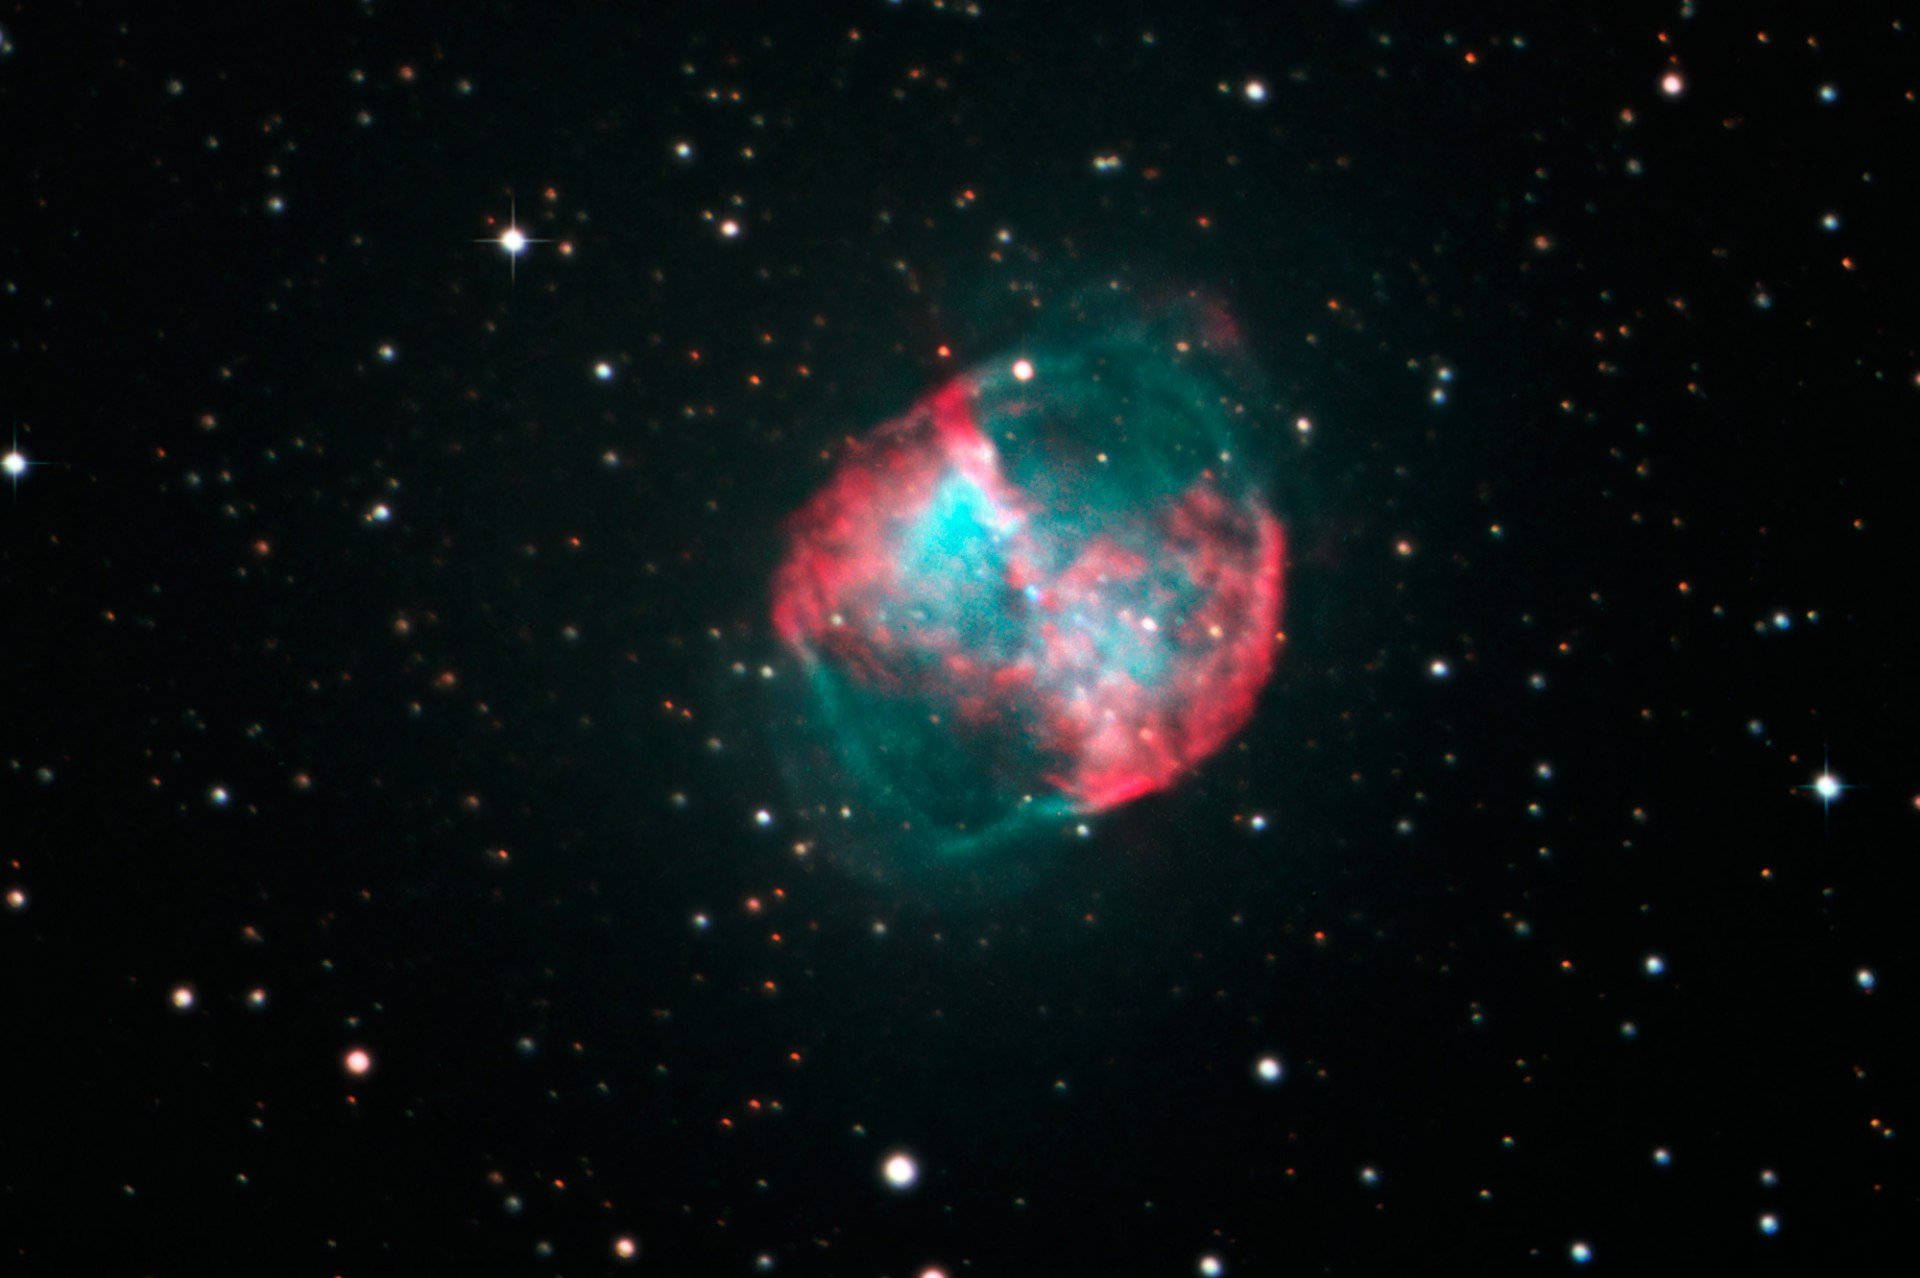 Dumbbell Nebula (M 27)